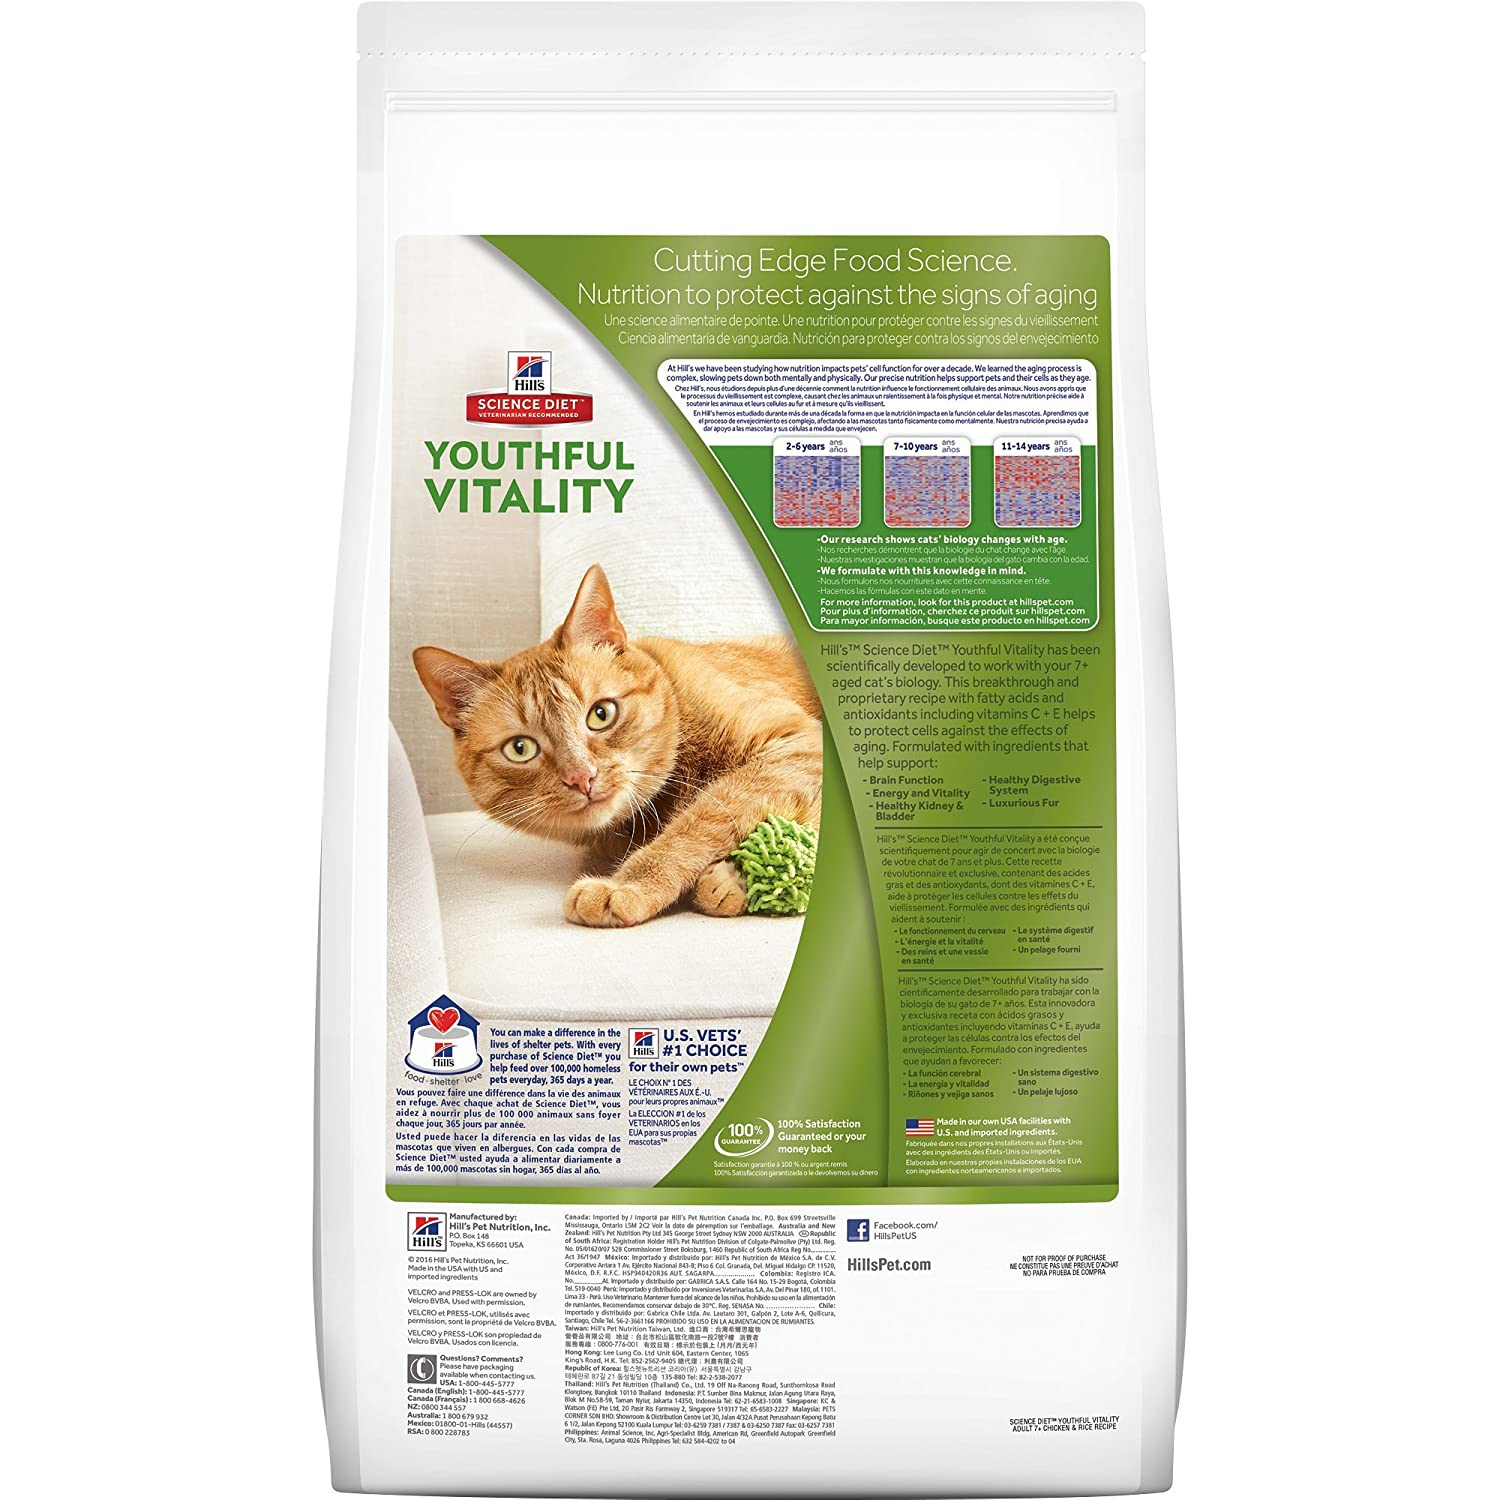 Amazon.com : Hills Science Diet Senior Cat Food, Adult 7+ Youthful Vitality Chicken & Rice Recipe Dry Cat Food, 13 lb Bag : Pet Supplies